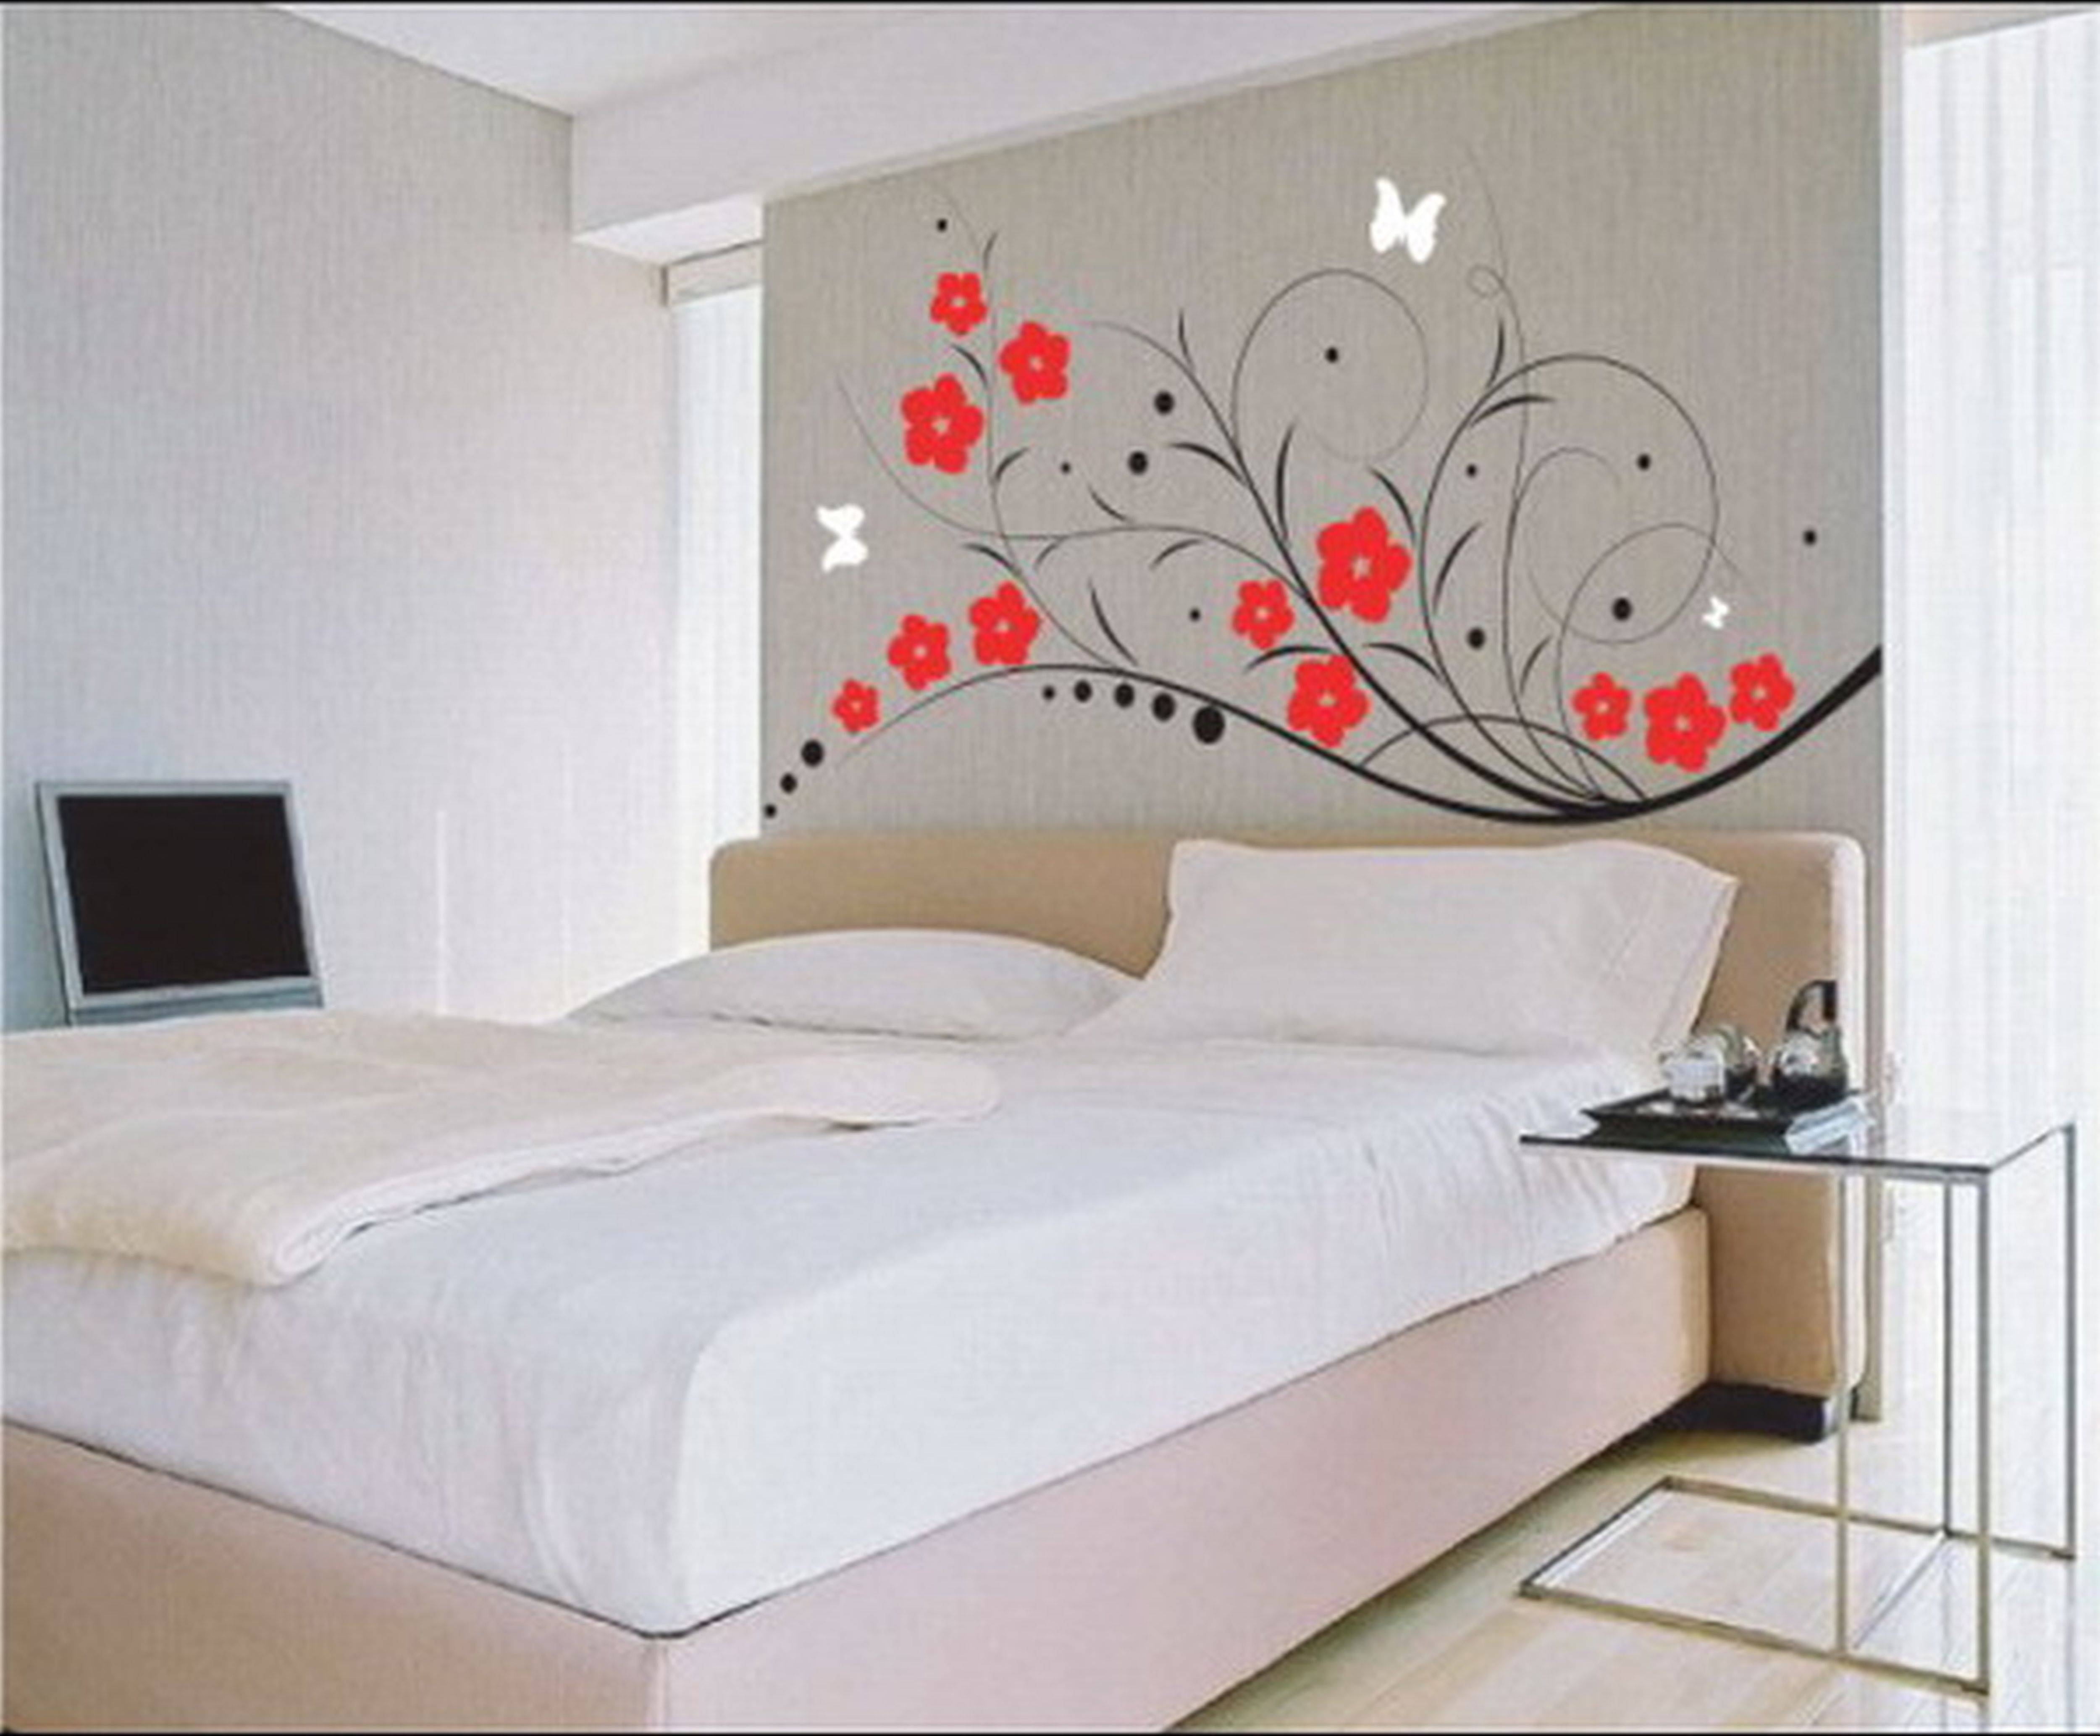 Bedroom : Cool Wall Decor Large Wall Art Cheap Bedroom Paint Room Within 2018 Cheap Big Wall Art (View 15 of 20)